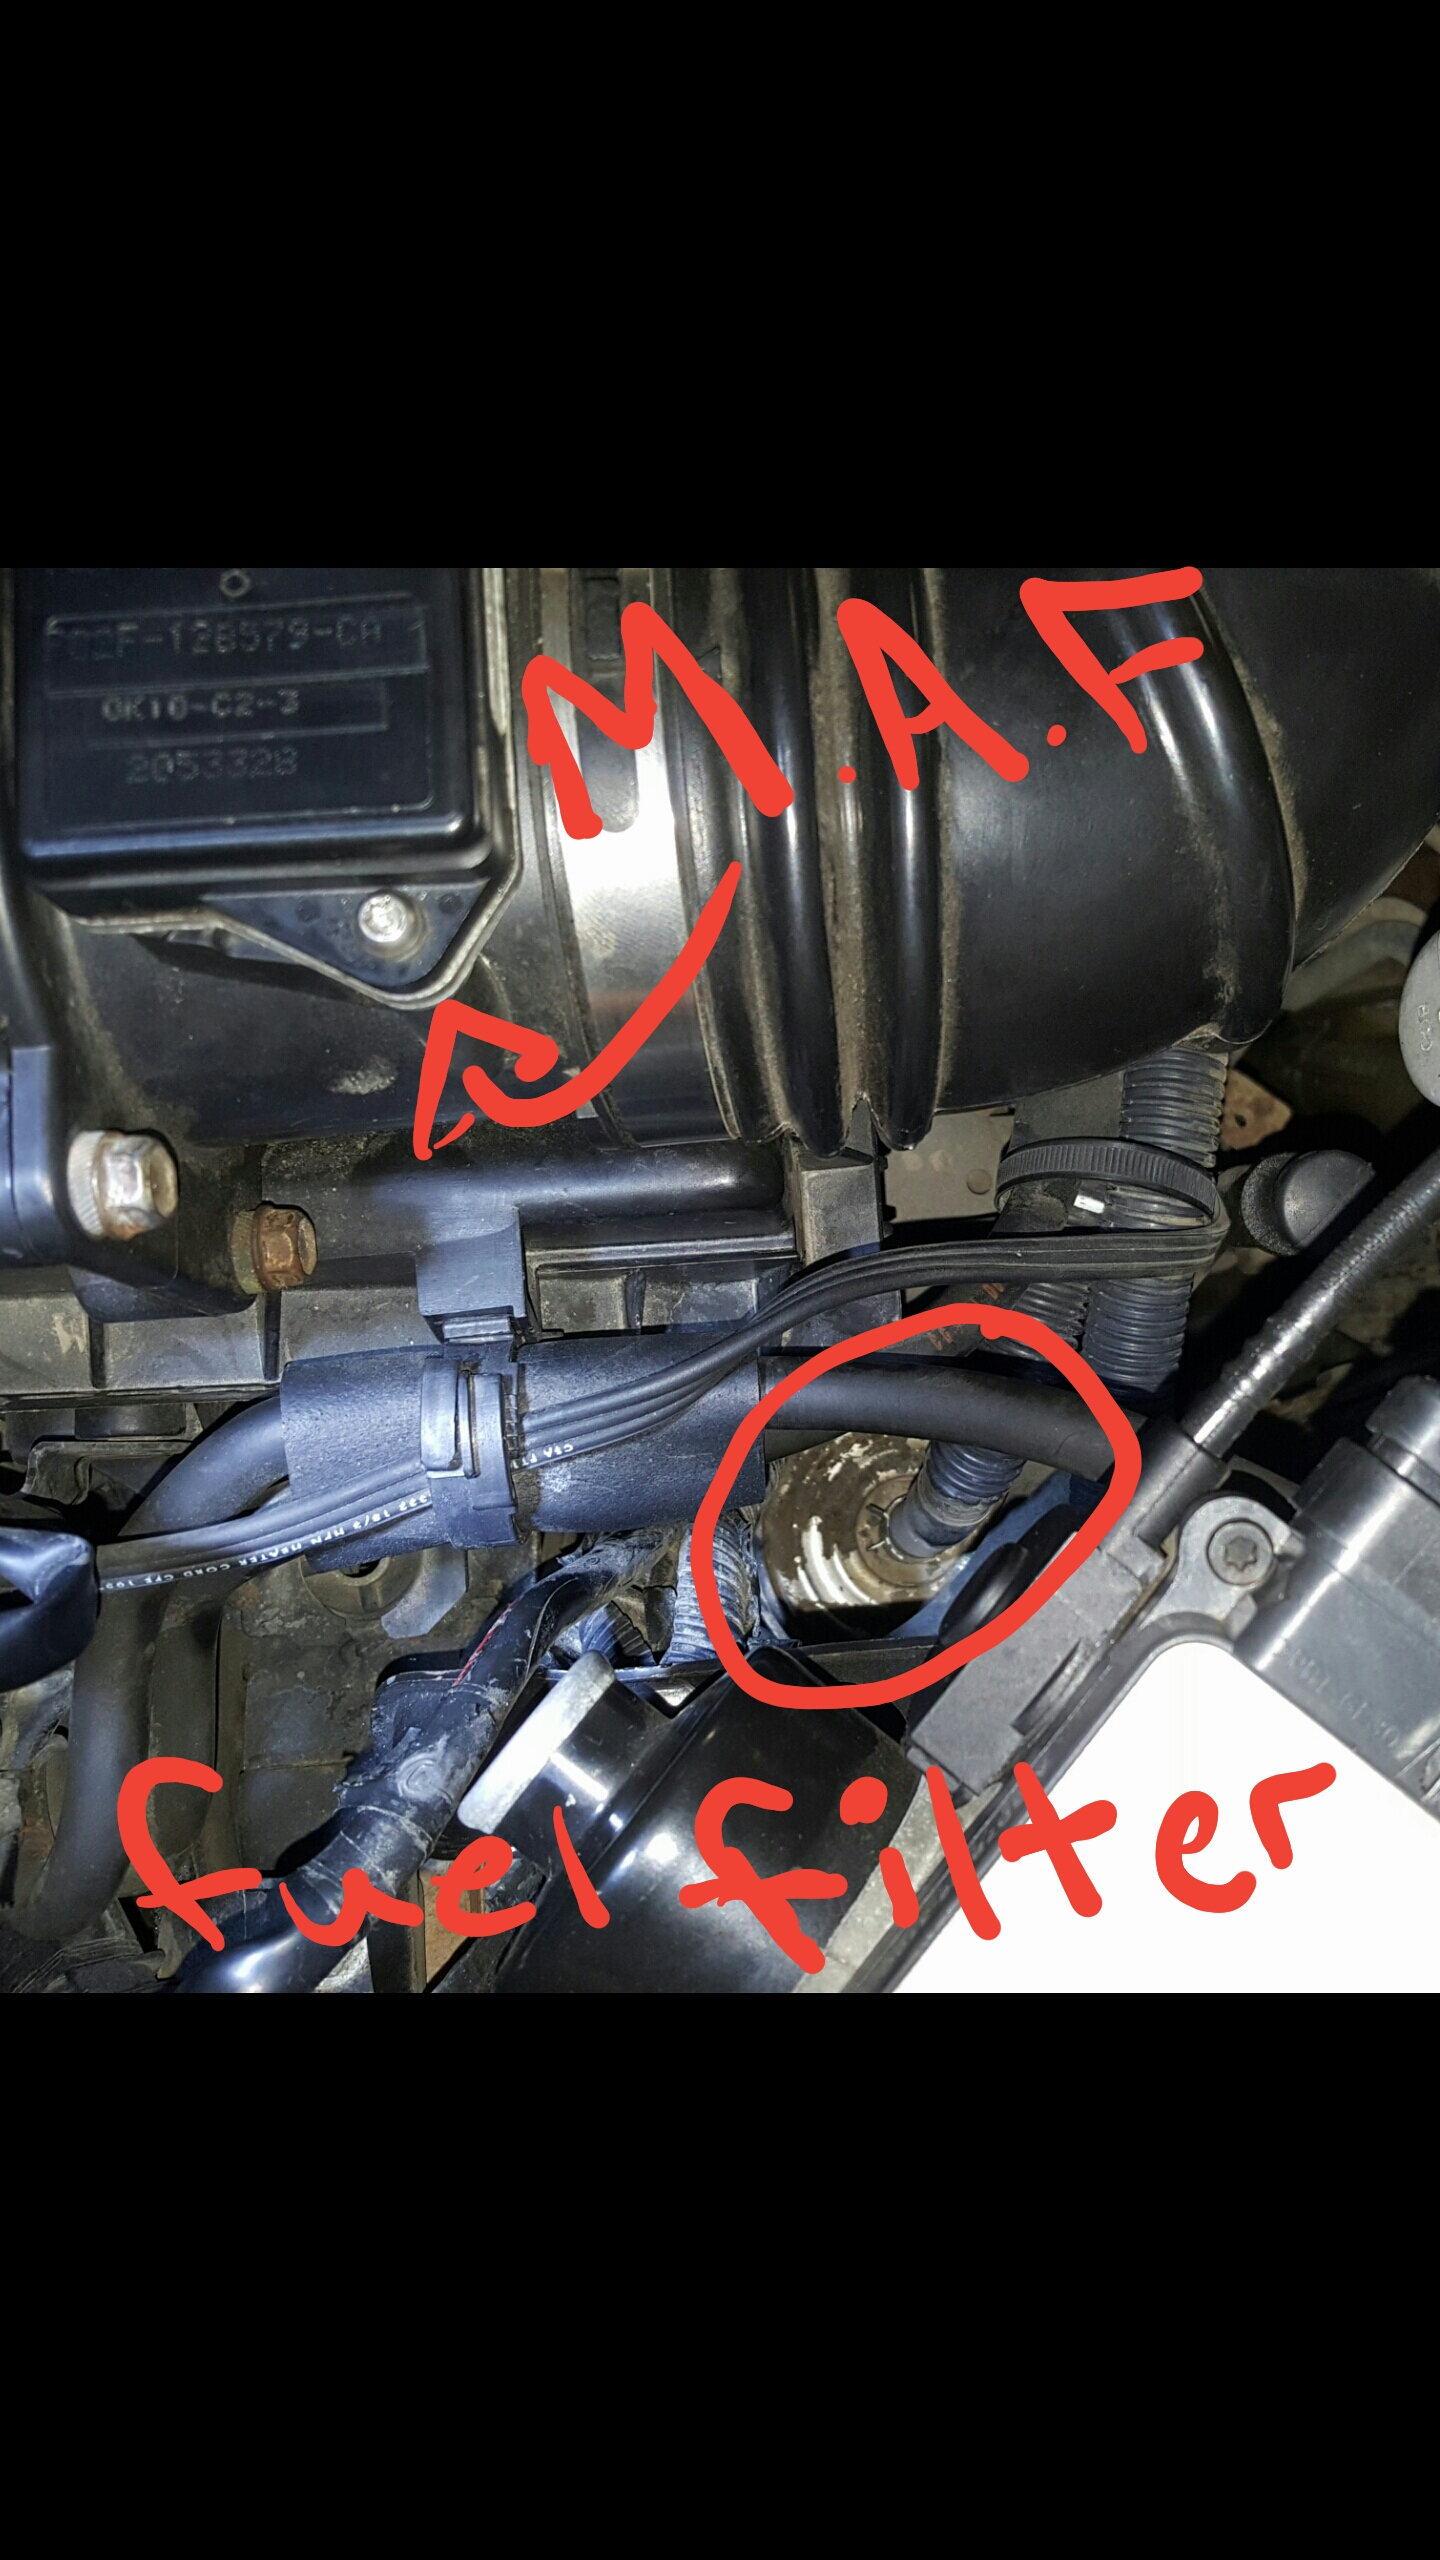 mazda 626 fuel filter replacement - wiring diagram schema state-head -  state-head.atmosphereconcept.it  atmosphereconcept.it